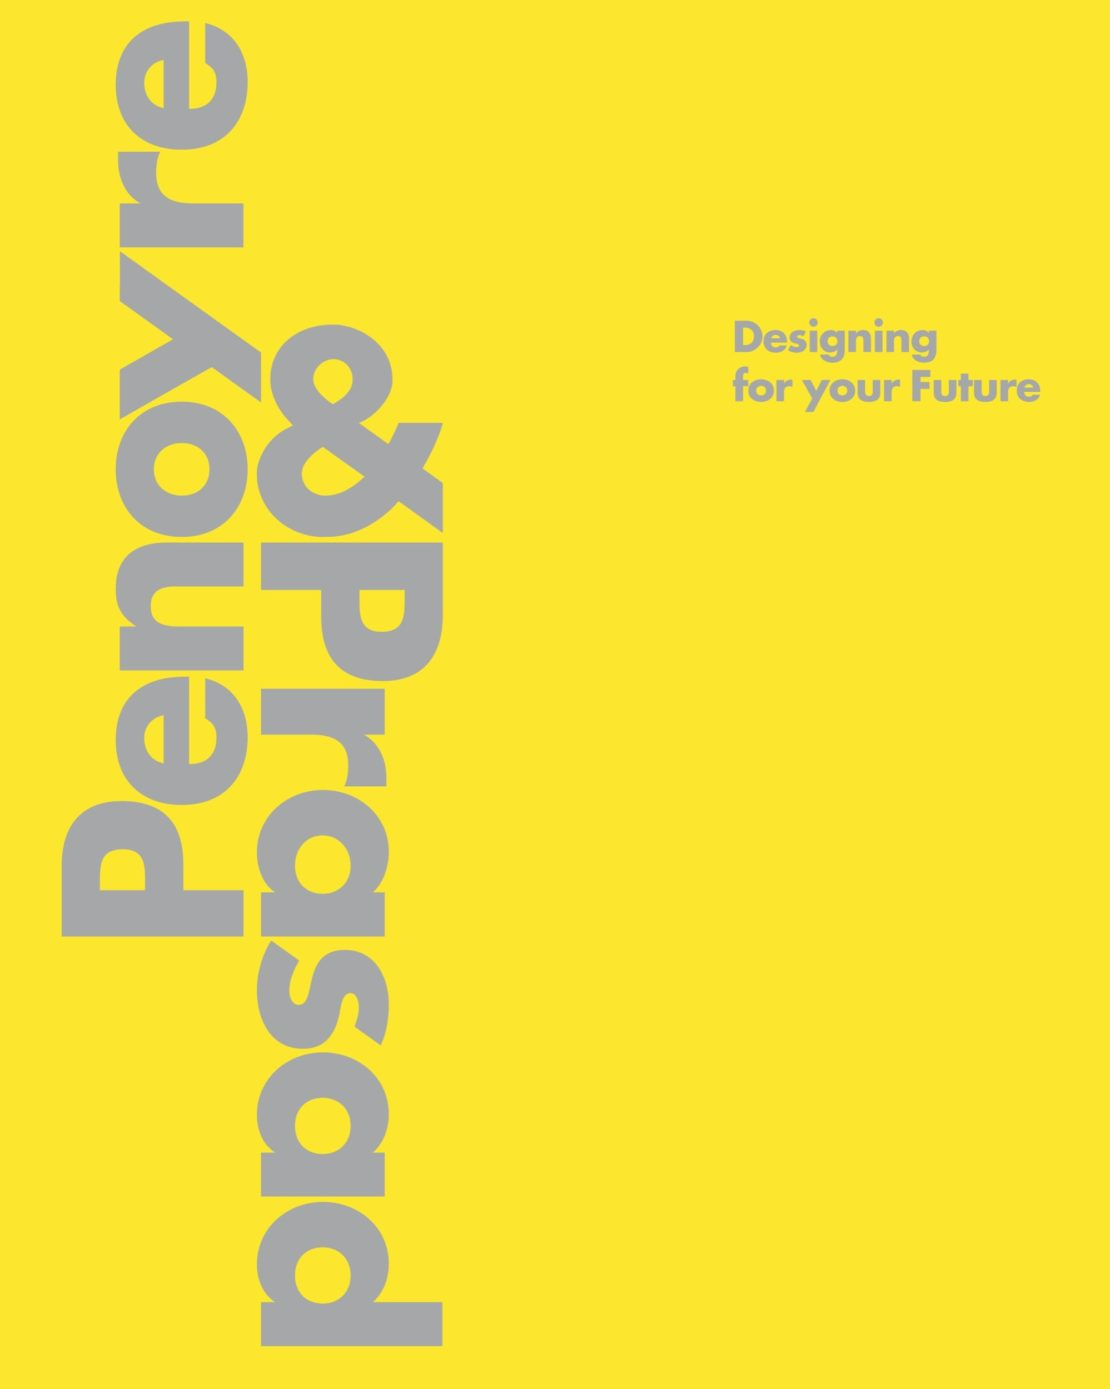 Designing for your Future